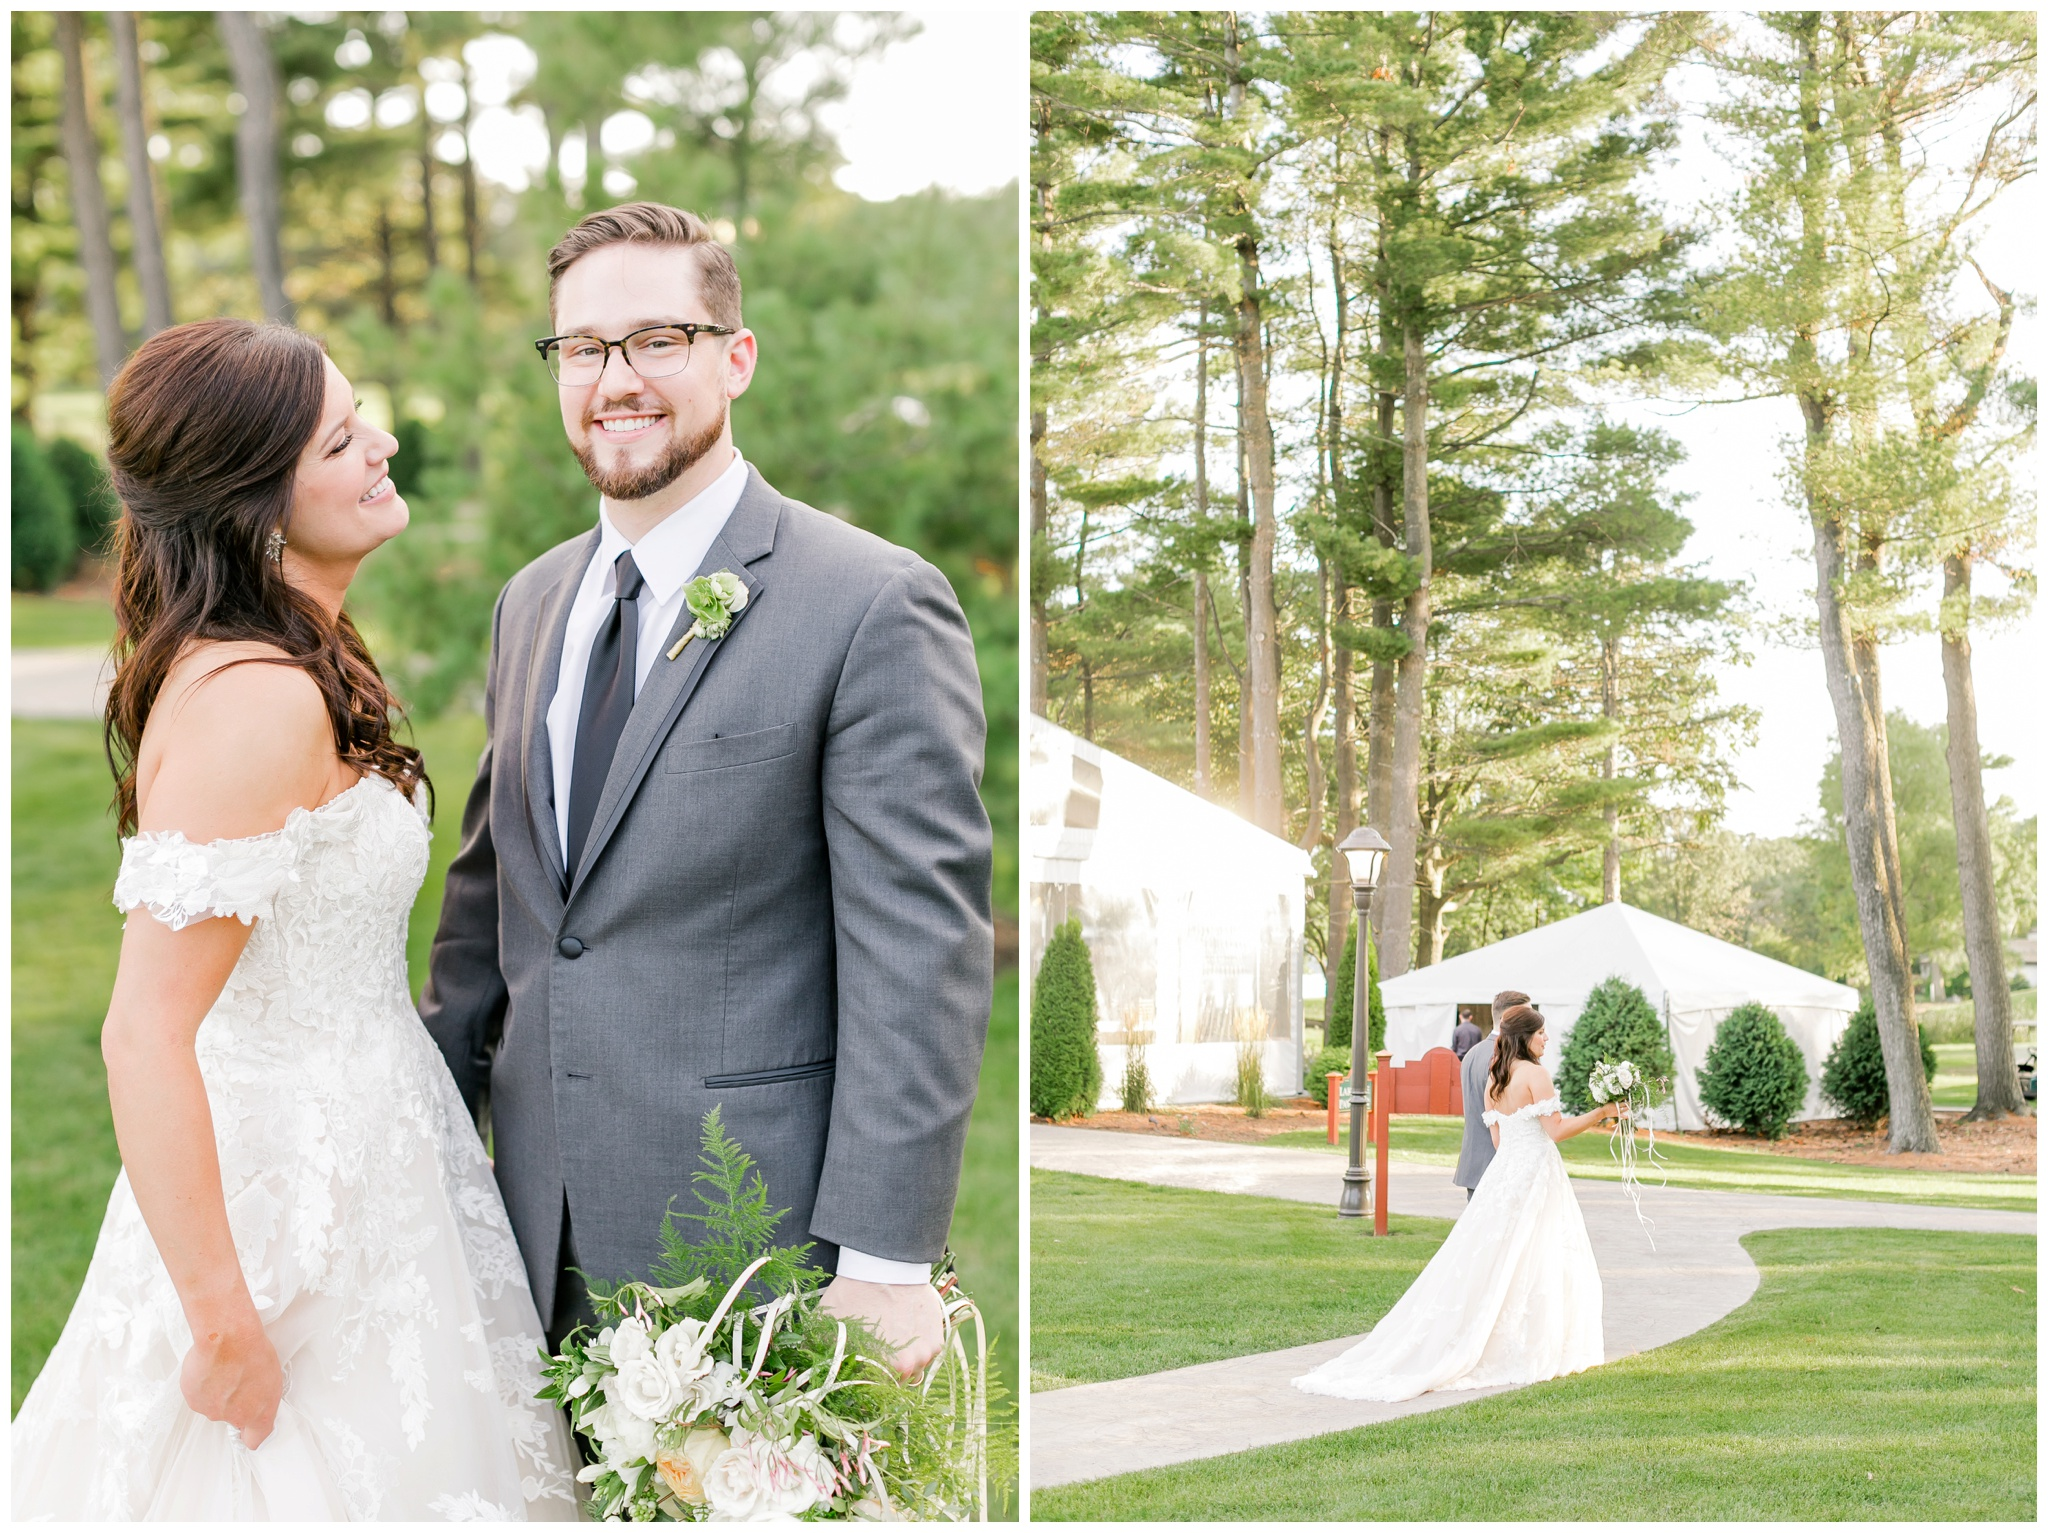 bishops_bay_country_club_wedding_middleton_wisconsin_caynay_photo_4732.jpg